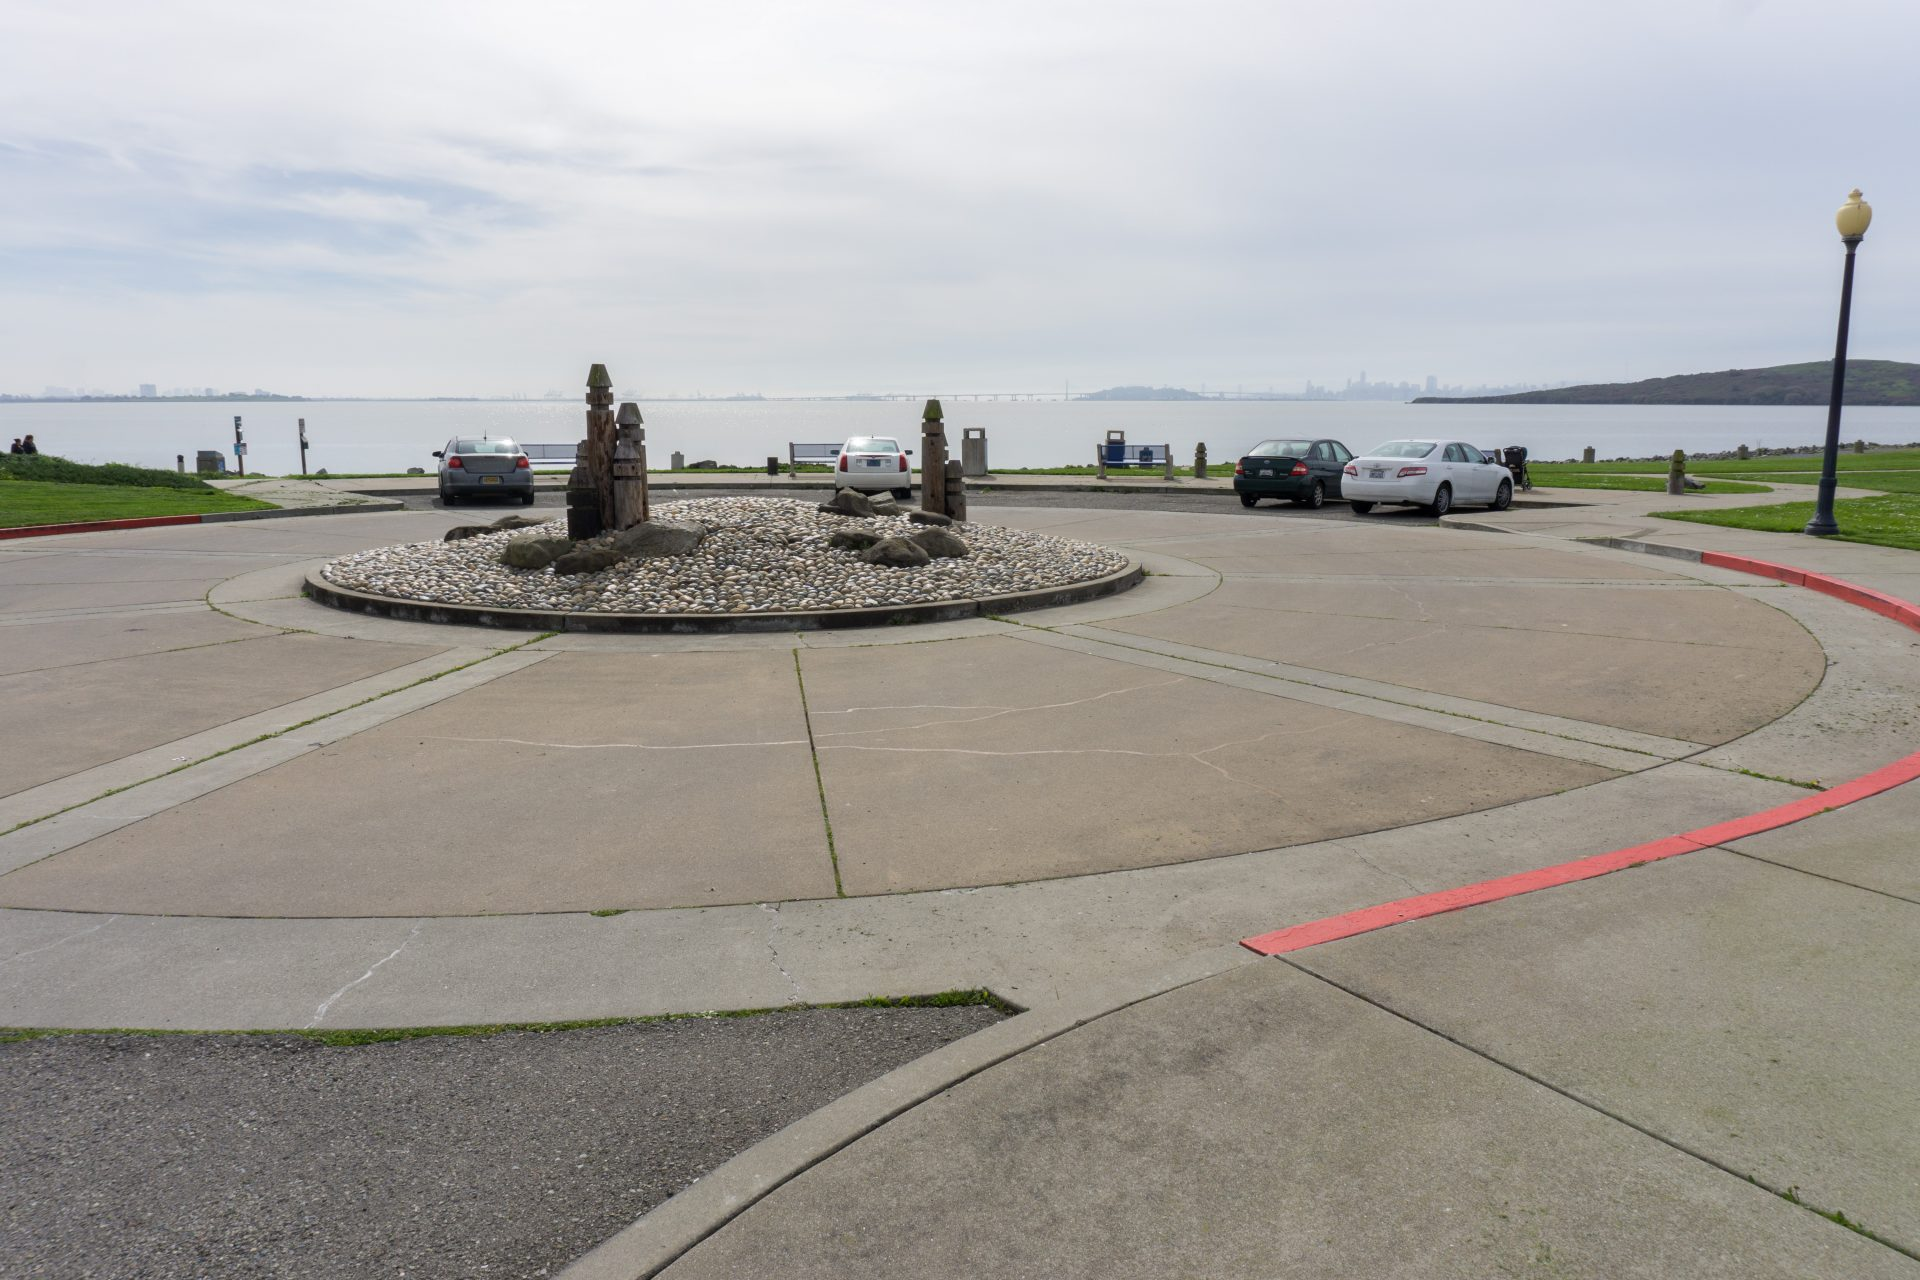 Roundabout paved driveway with wood and concrete sculptures in center